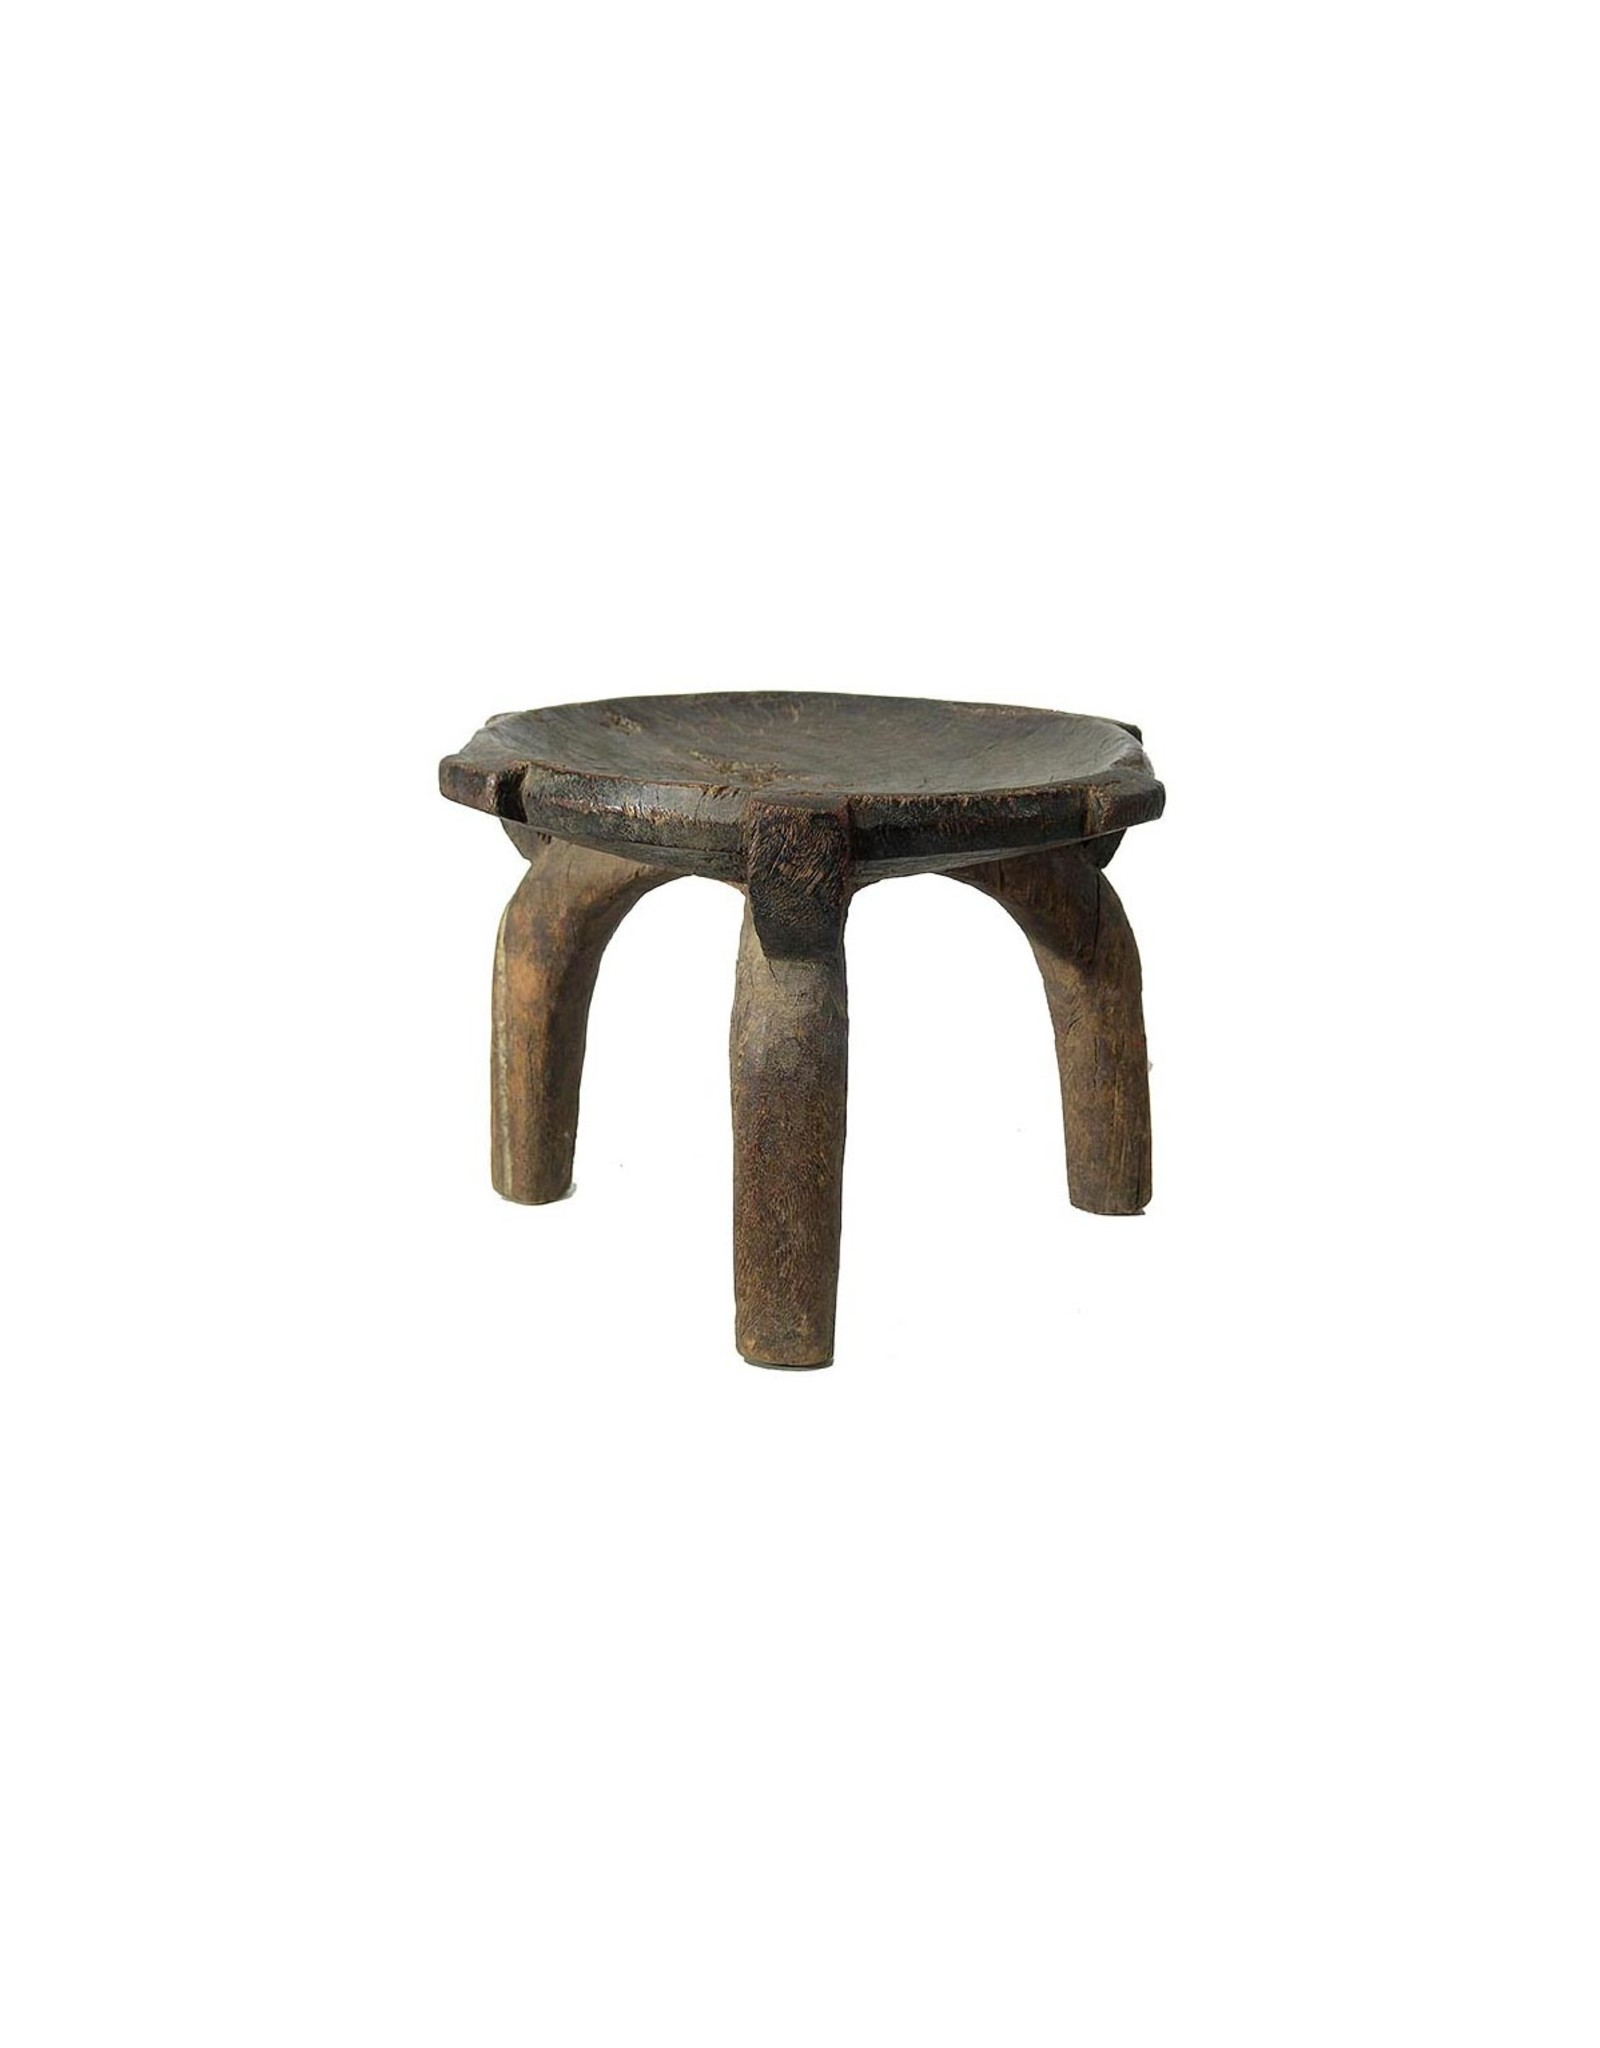 Authentic HeHe stool from Tanzania - Rare antique African vintage chair